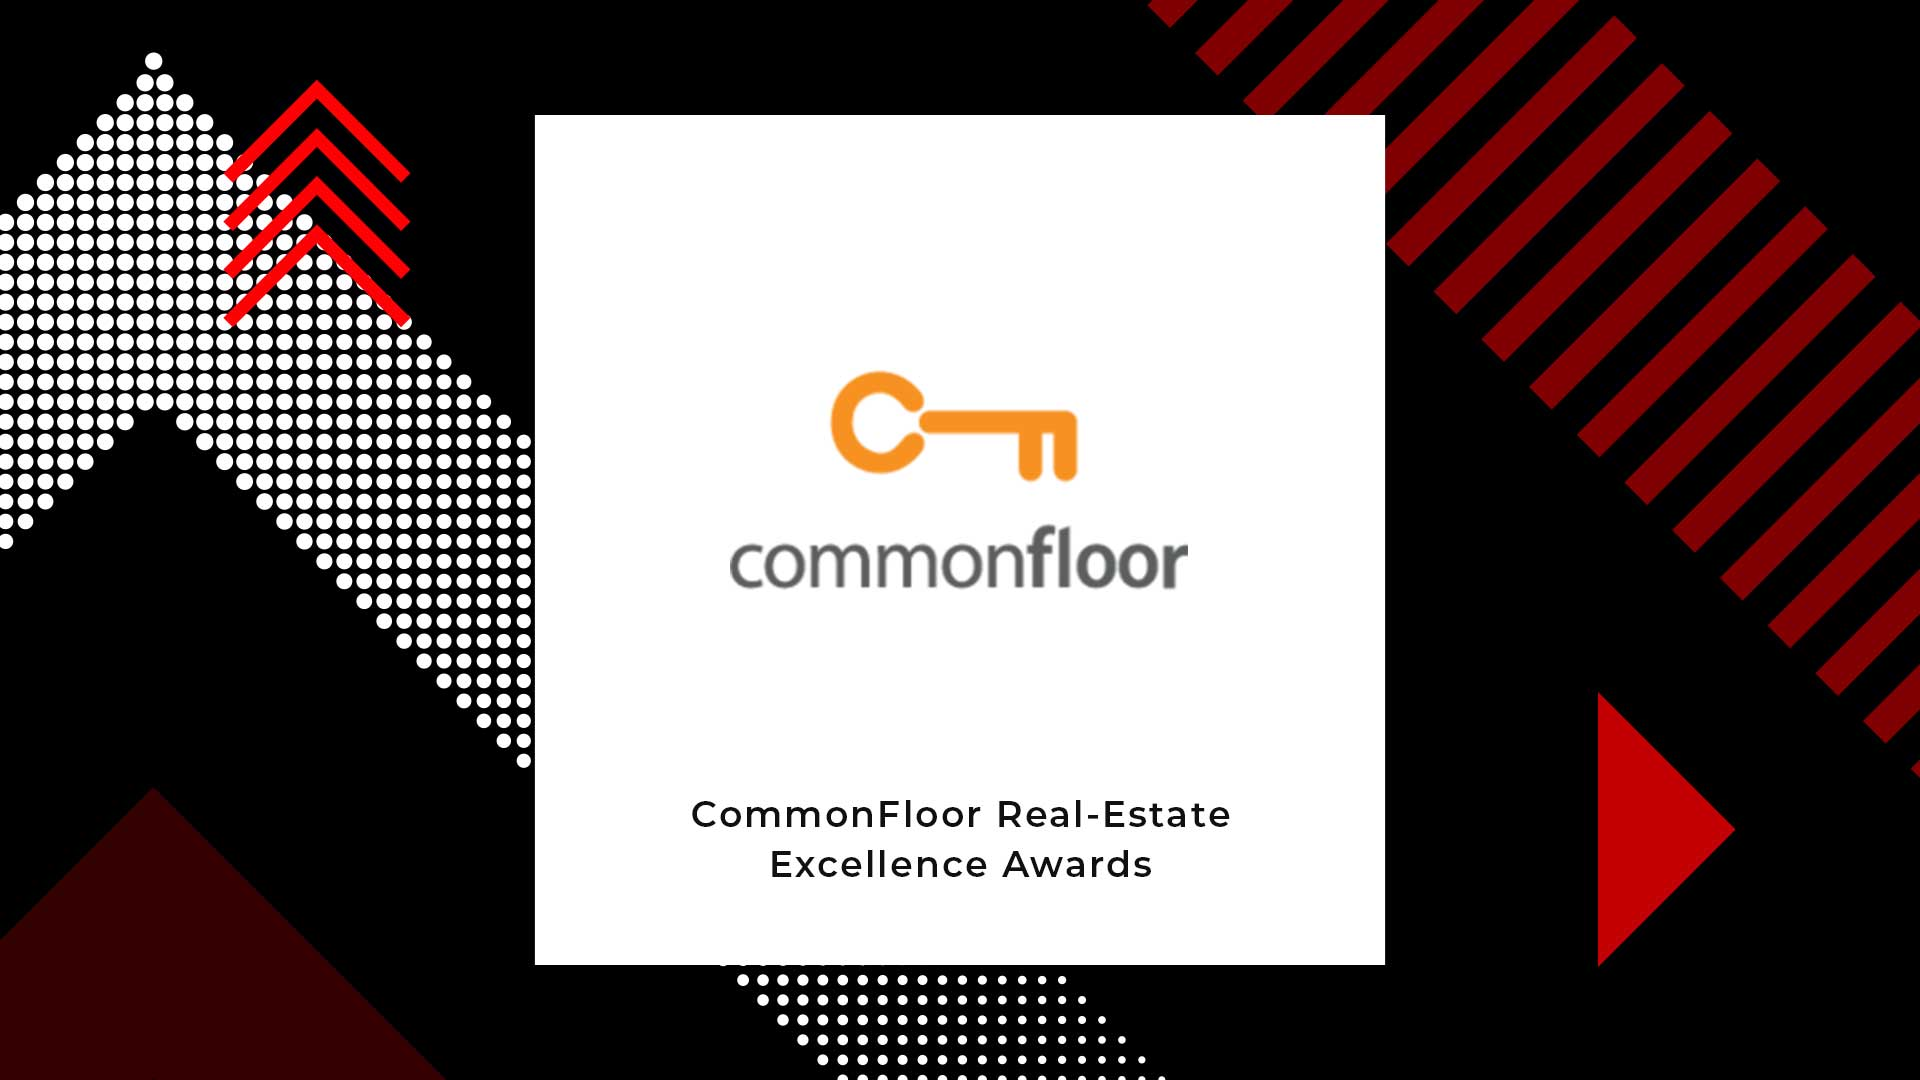 CommonFloor Hosts CommonFloor Real-Estate Excellence Awards '19